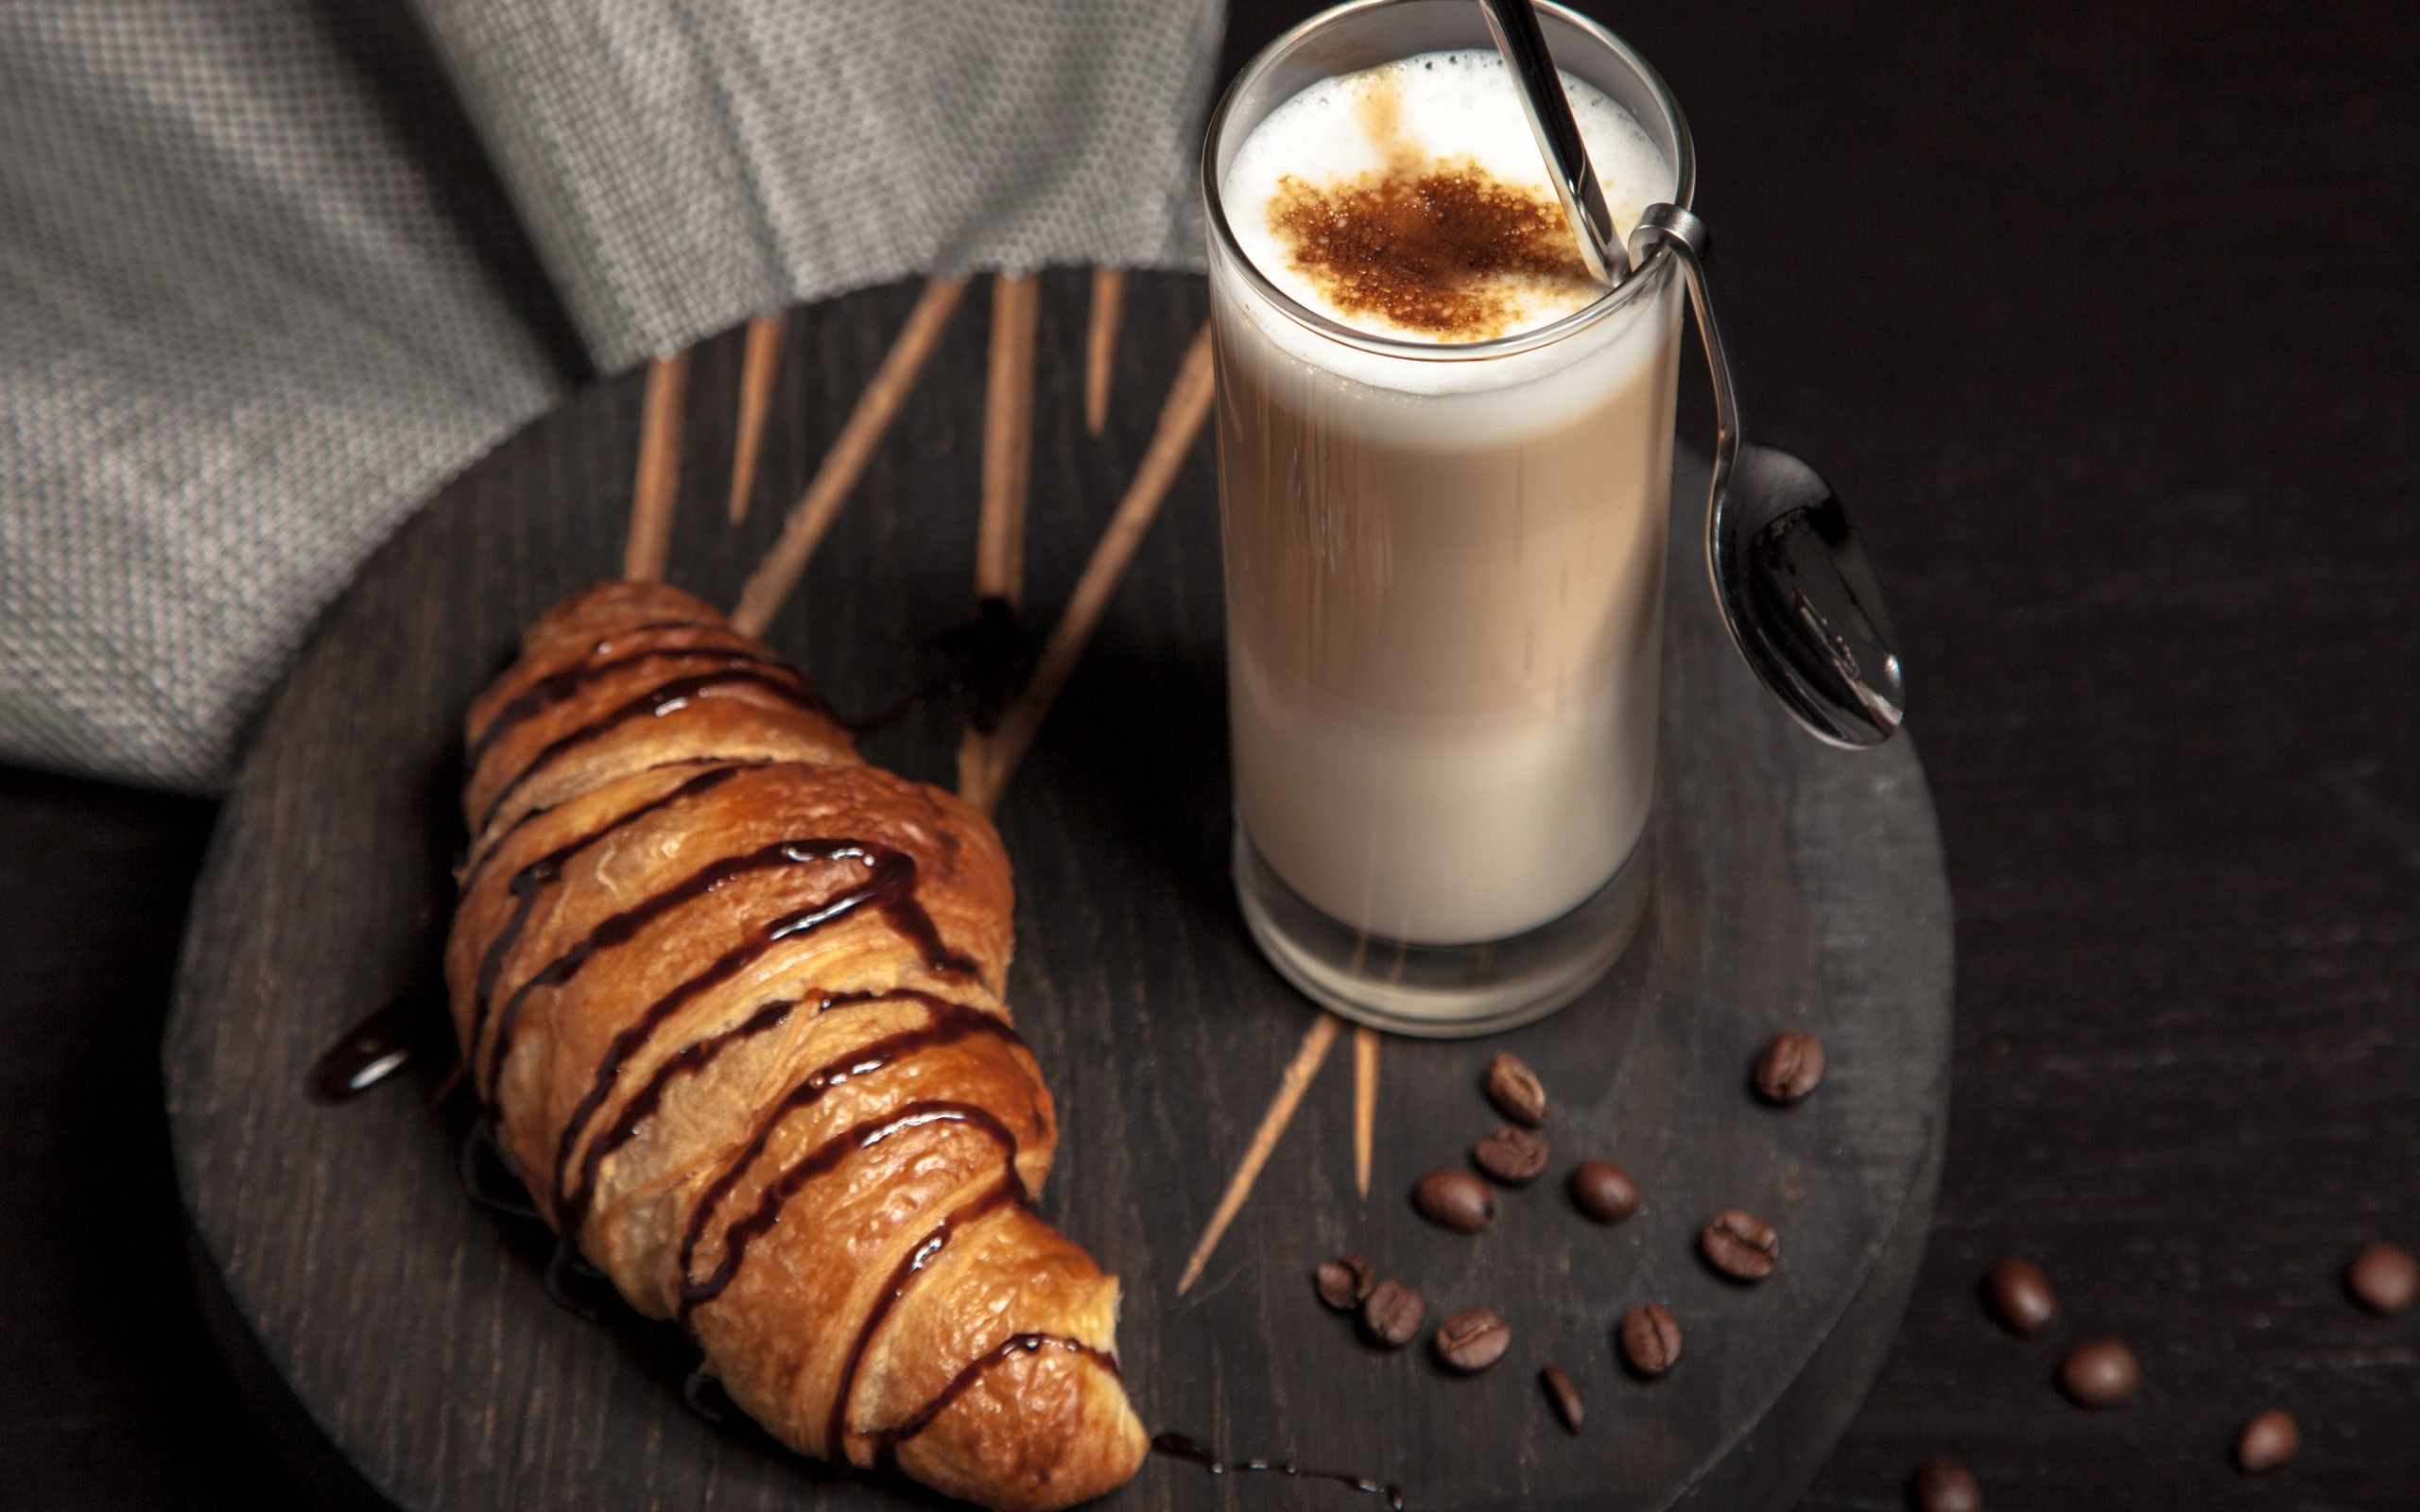 Cappuccino and chocolate croissant wallpaper 2560x1600